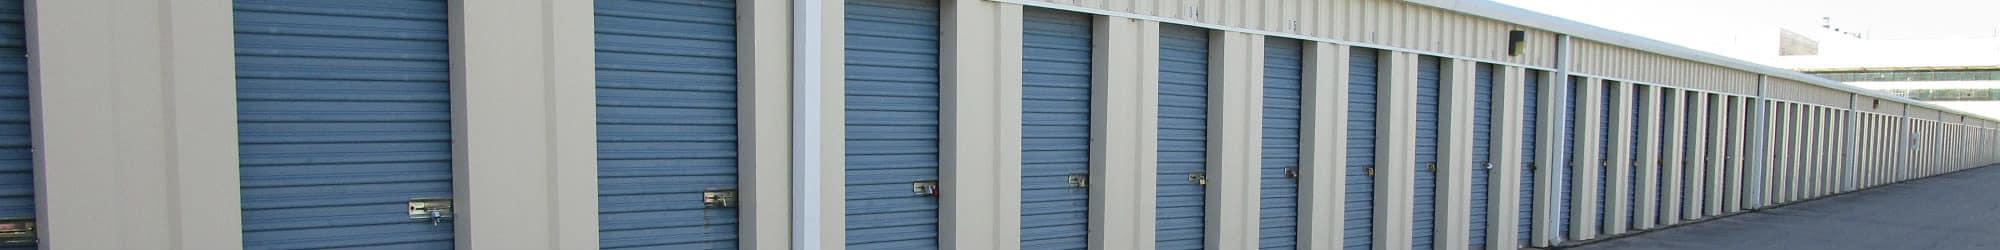 Reviews of self storage in Baltimore MD